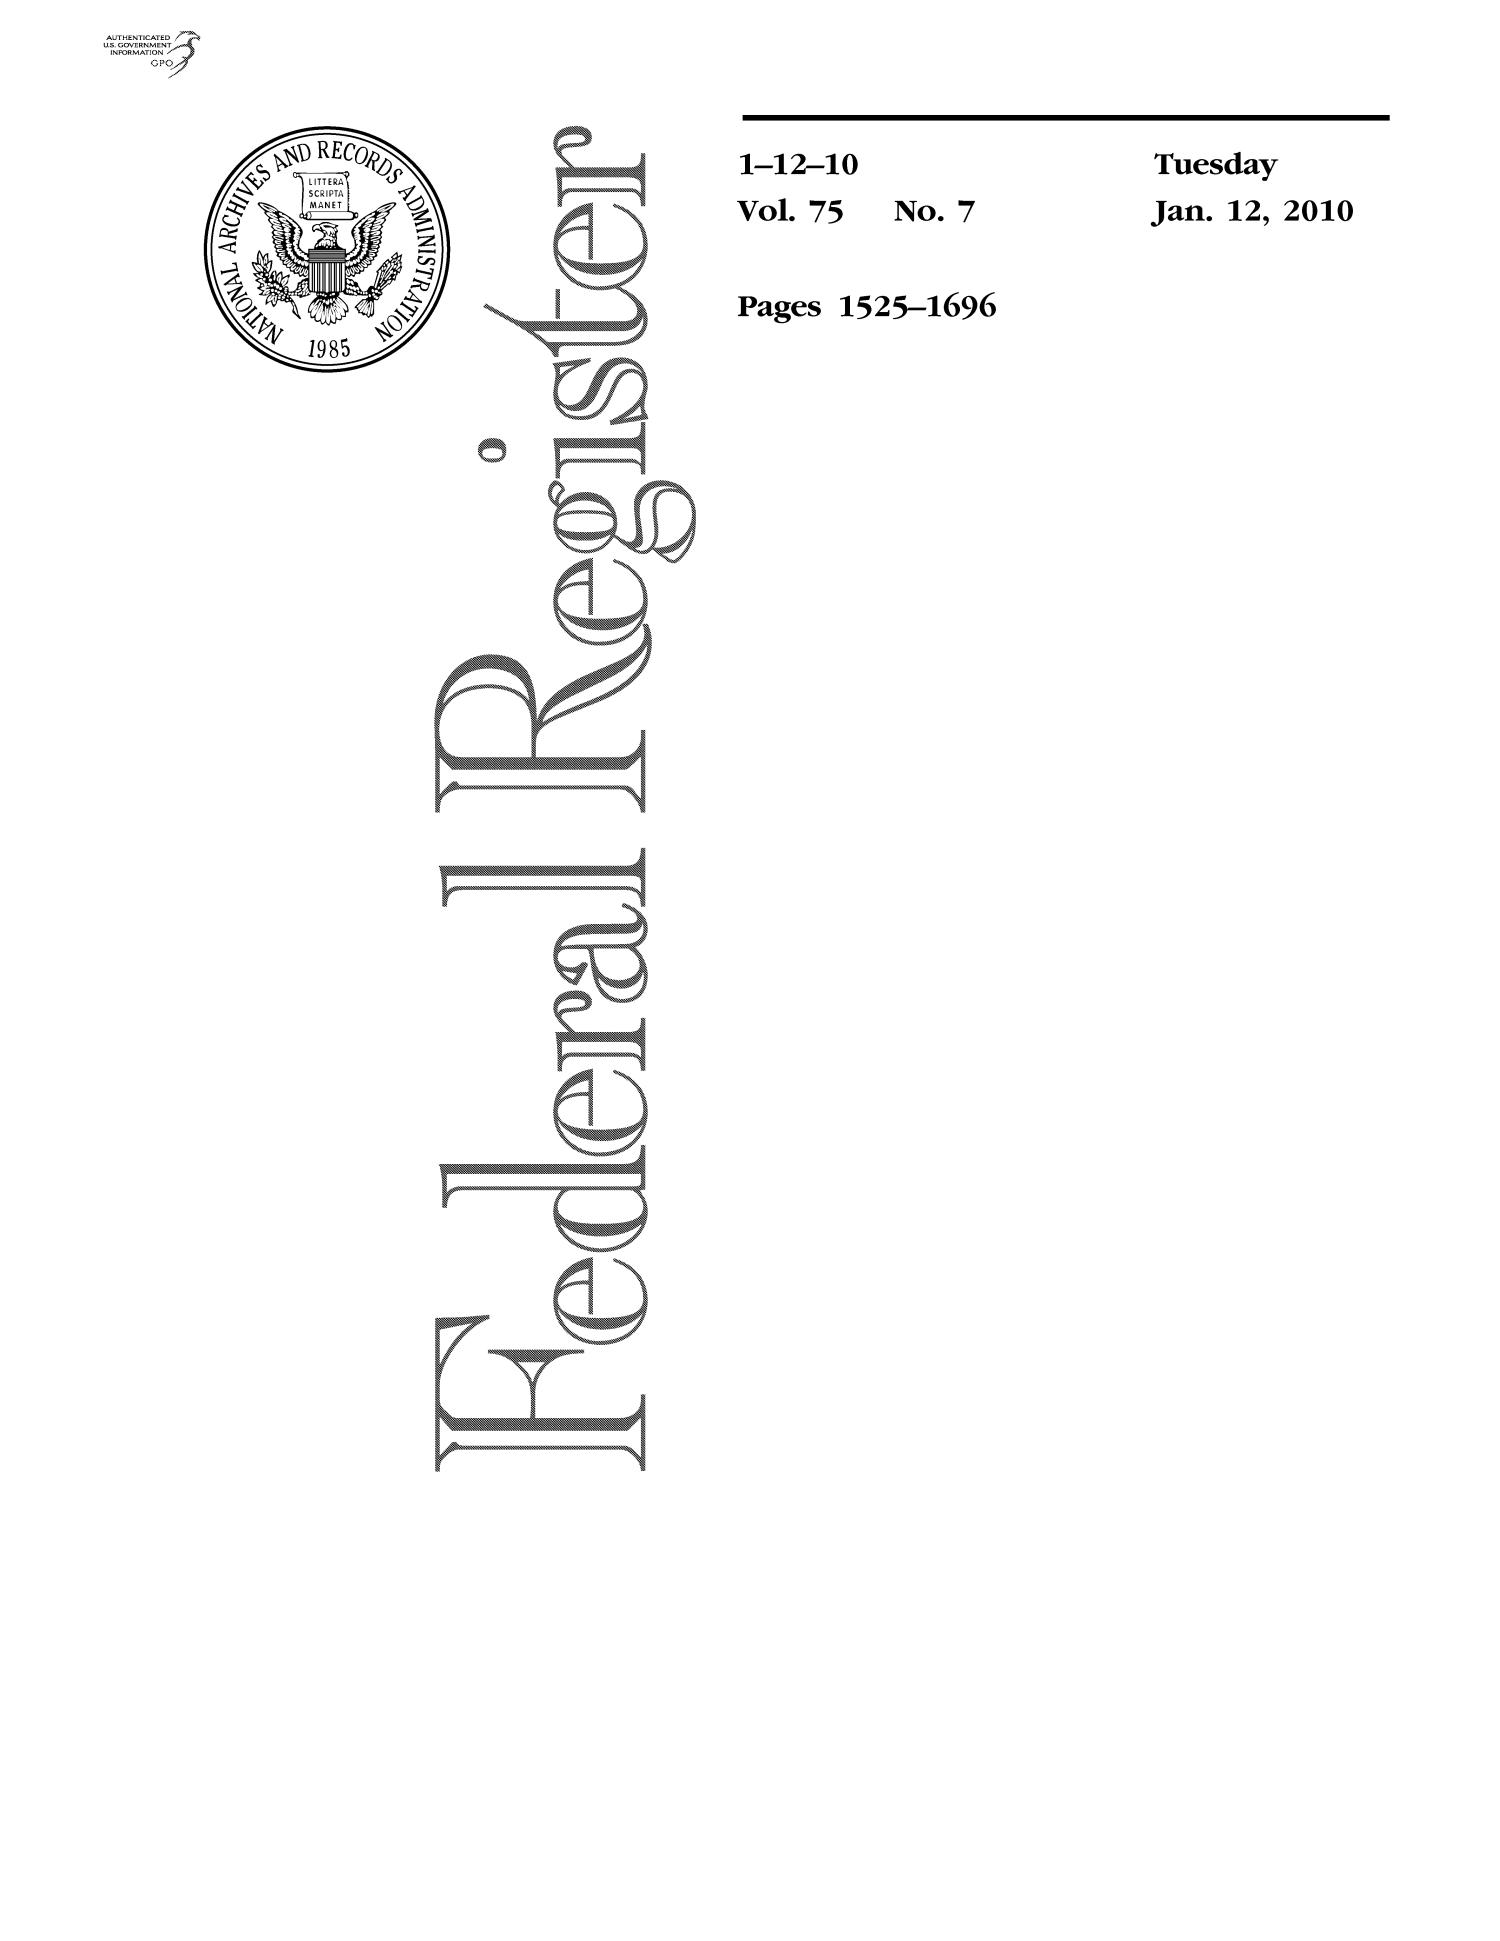 Federal Register, Volume 75, Number 7, January 12, 2010, Pages 1525-1696                                                                                                      Title Page